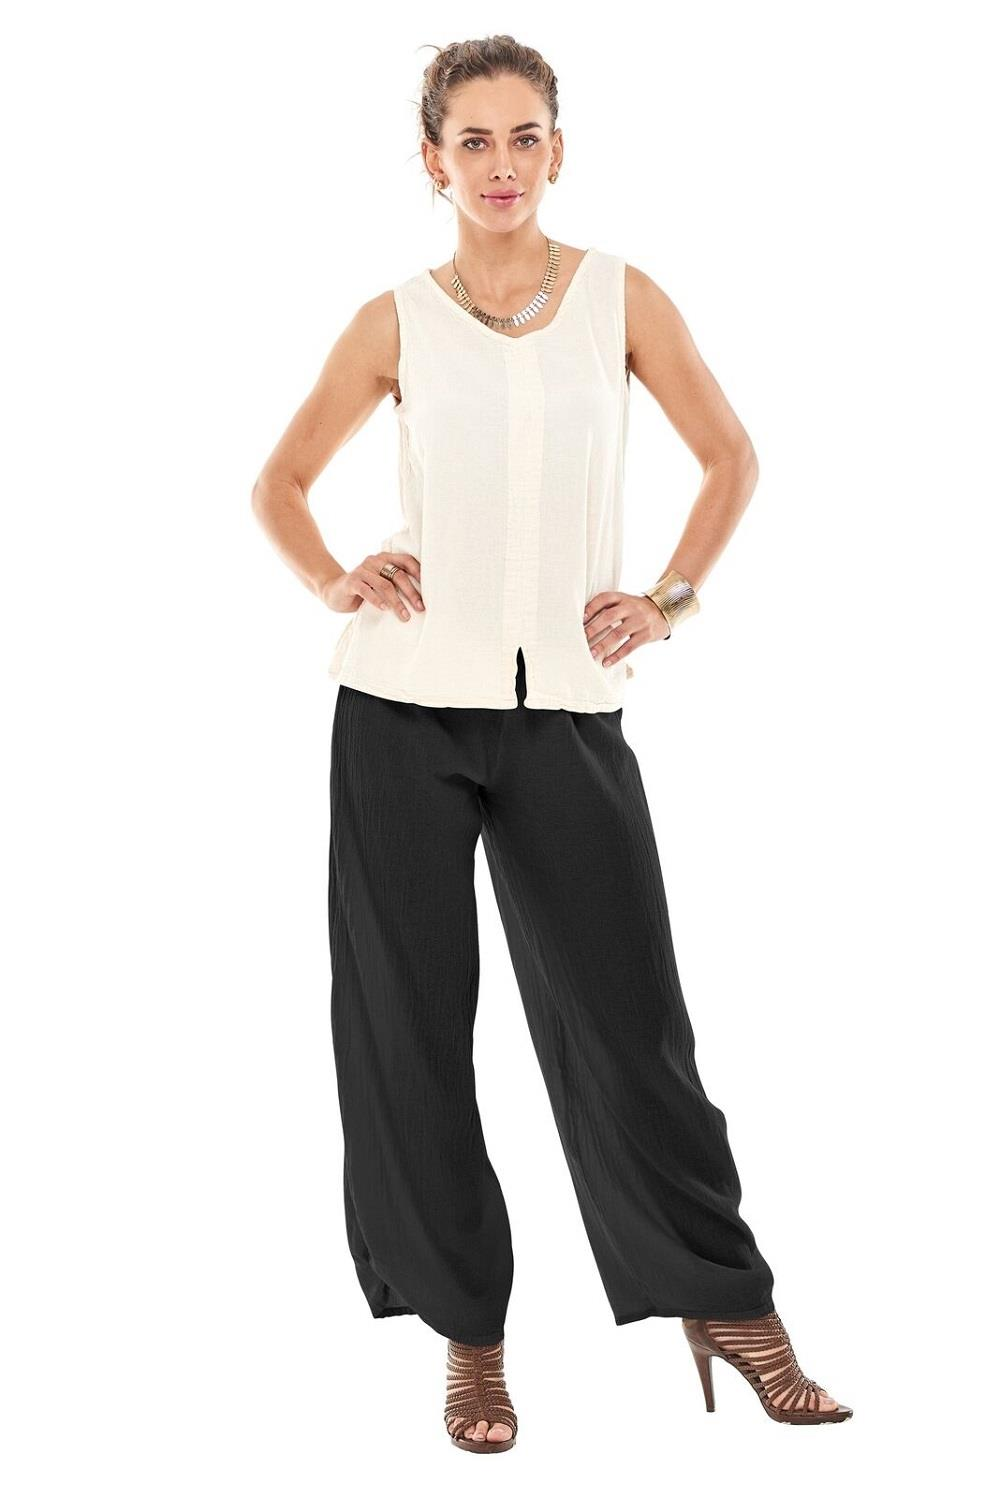 Oh My Gauze Polo Pants at www.threewildwomen.ca | Free shipping over $200 North America